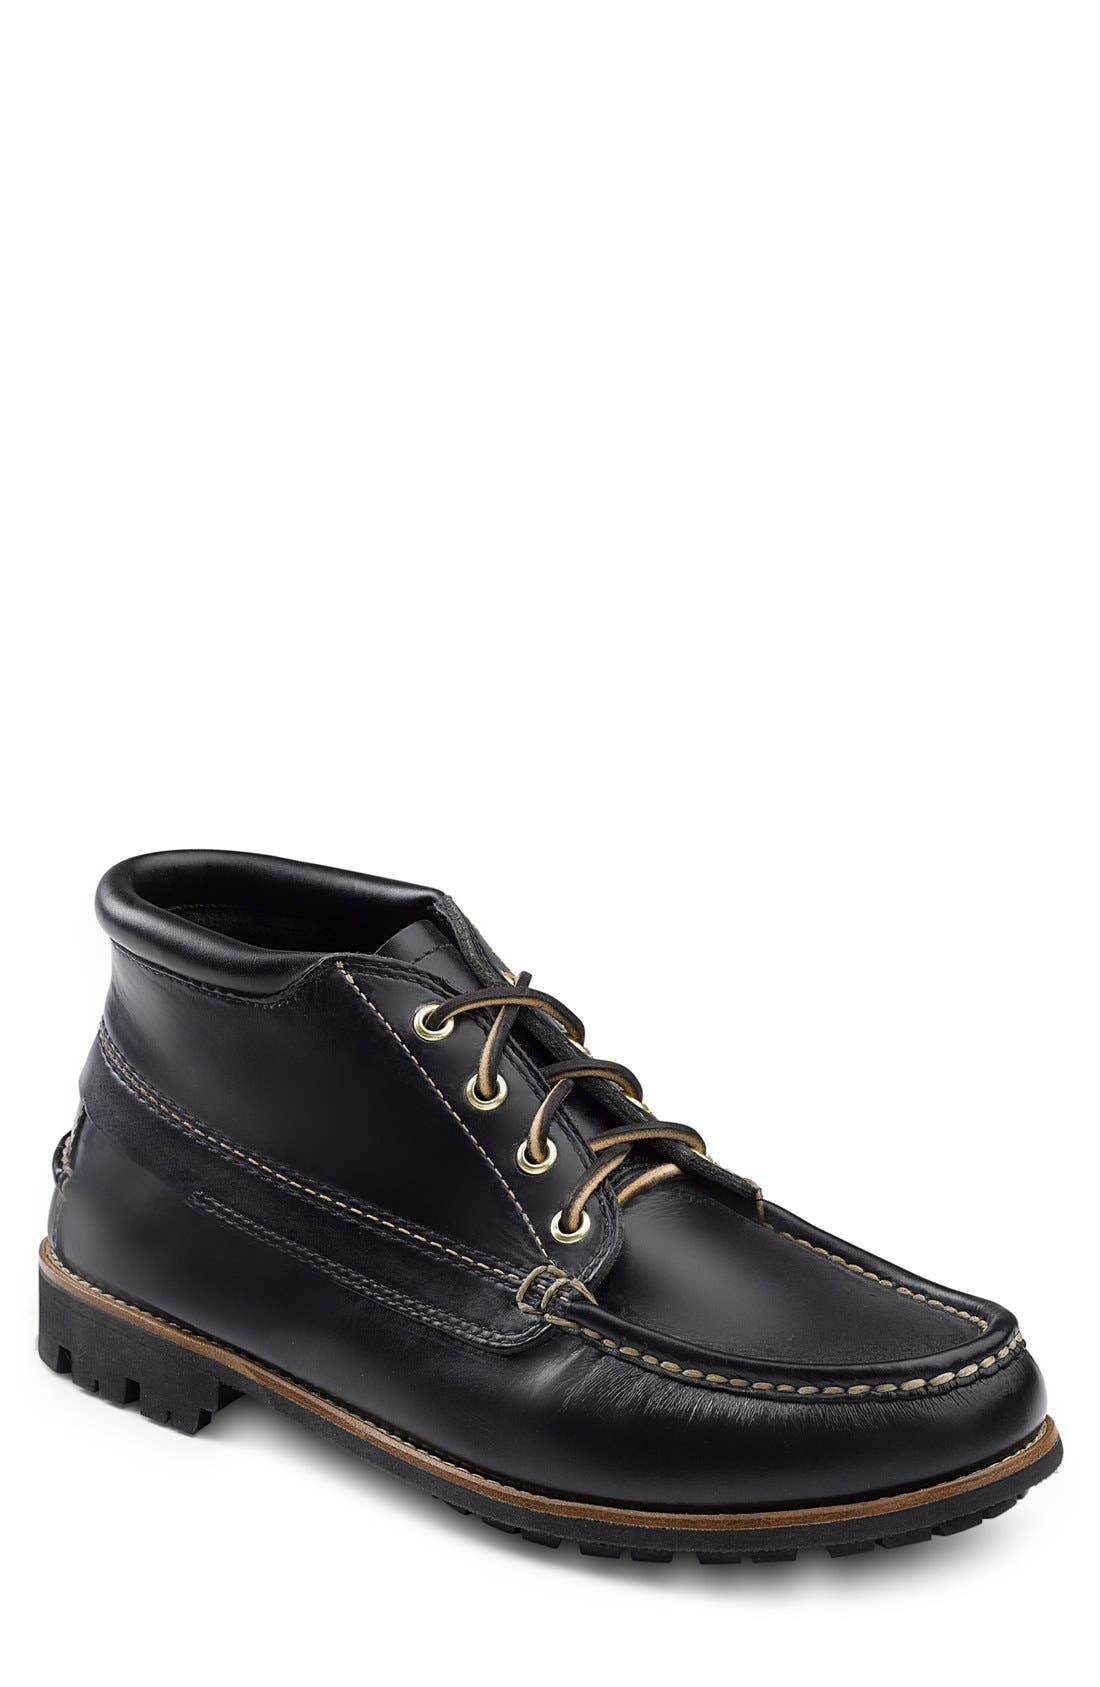 Alternate Image 1 Selected - G.H. Bass & Co. 'Abbott' Chukka Boot (Men)